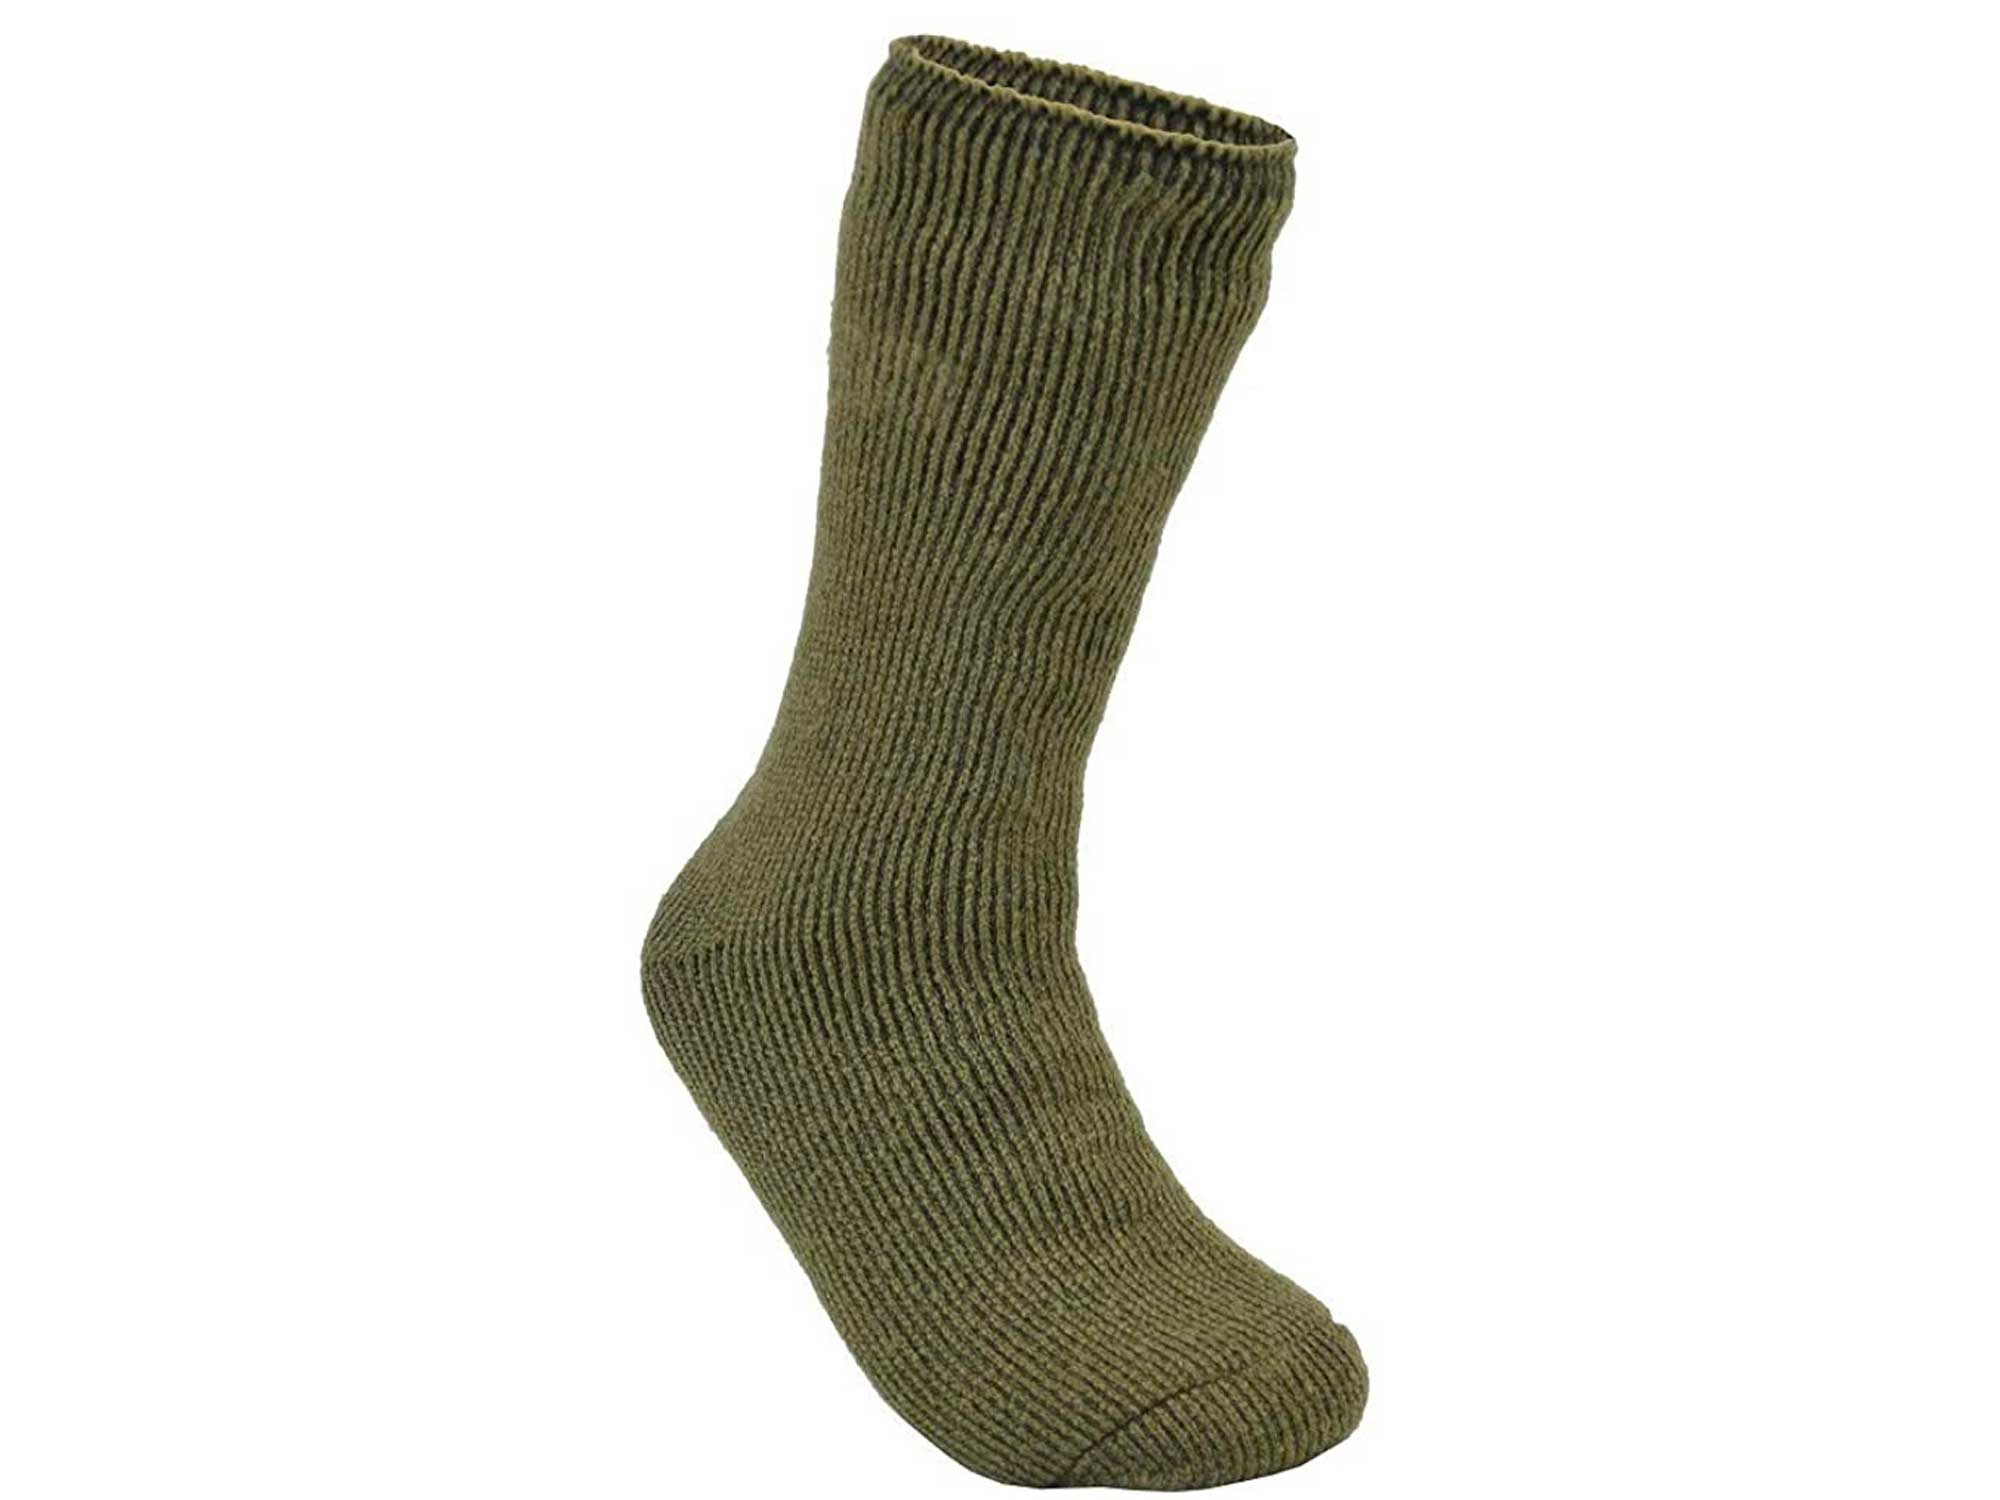 The best warm socks include EcoSox Unisex Blue Flame Thermal Crew Boot Socks